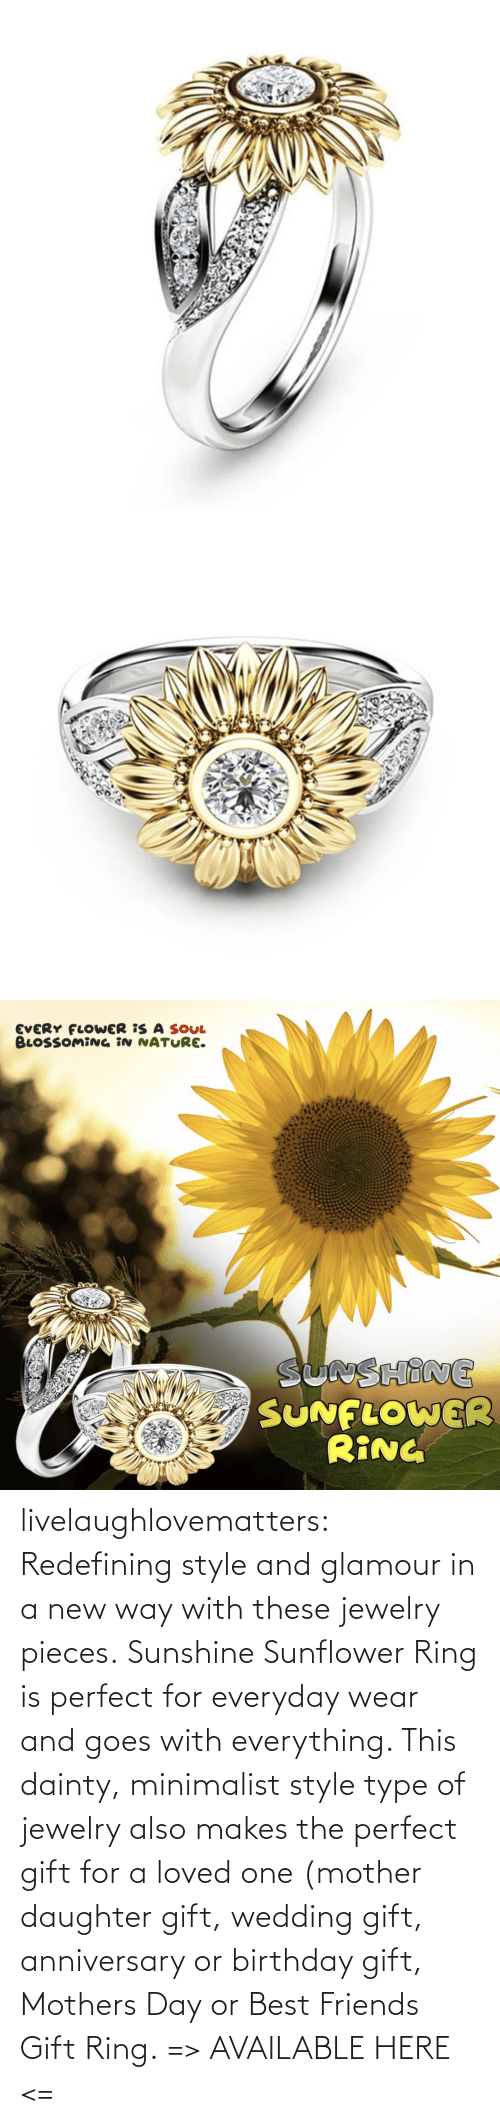 Birthday: livelaughlovematters: Redefining style and glamour in a new way with these jewelry pieces. Sunshine Sunflower Ring is perfect for everyday wear and goes with everything. This dainty, minimalist style type of jewelry also makes the perfect gift for a loved one (mother daughter gift, wedding gift, anniversary or birthday gift, Mothers Day or Best Friends Gift Ring. => AVAILABLE HERE <=